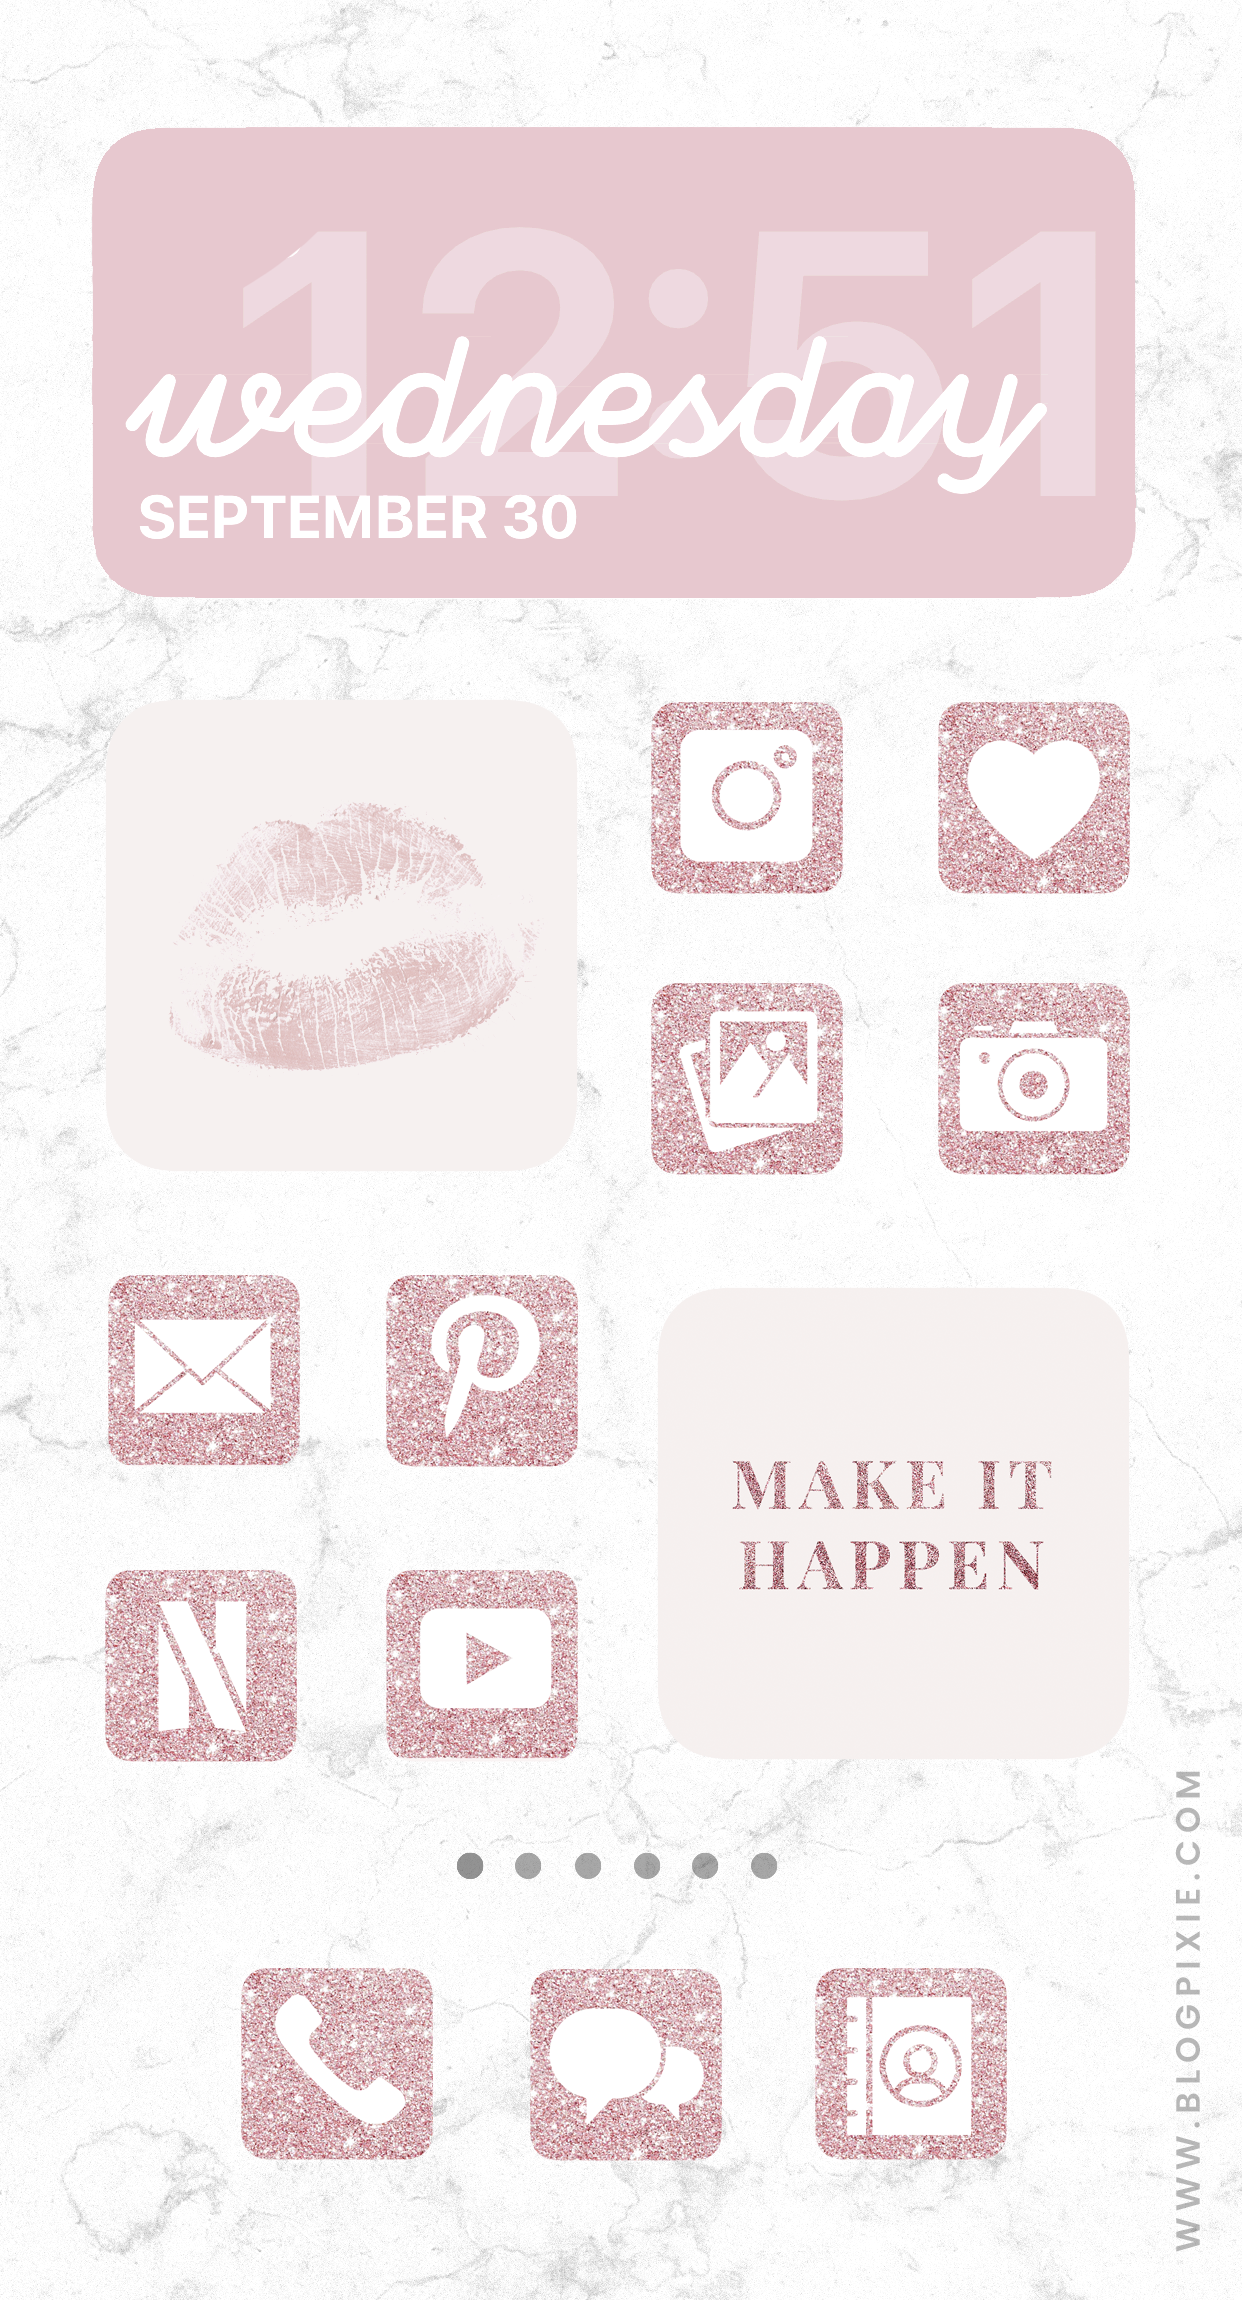 App Icons Aesthetic Pink Glitter In 2020 Cute App Wallpaper Iphone Christmas App Icon